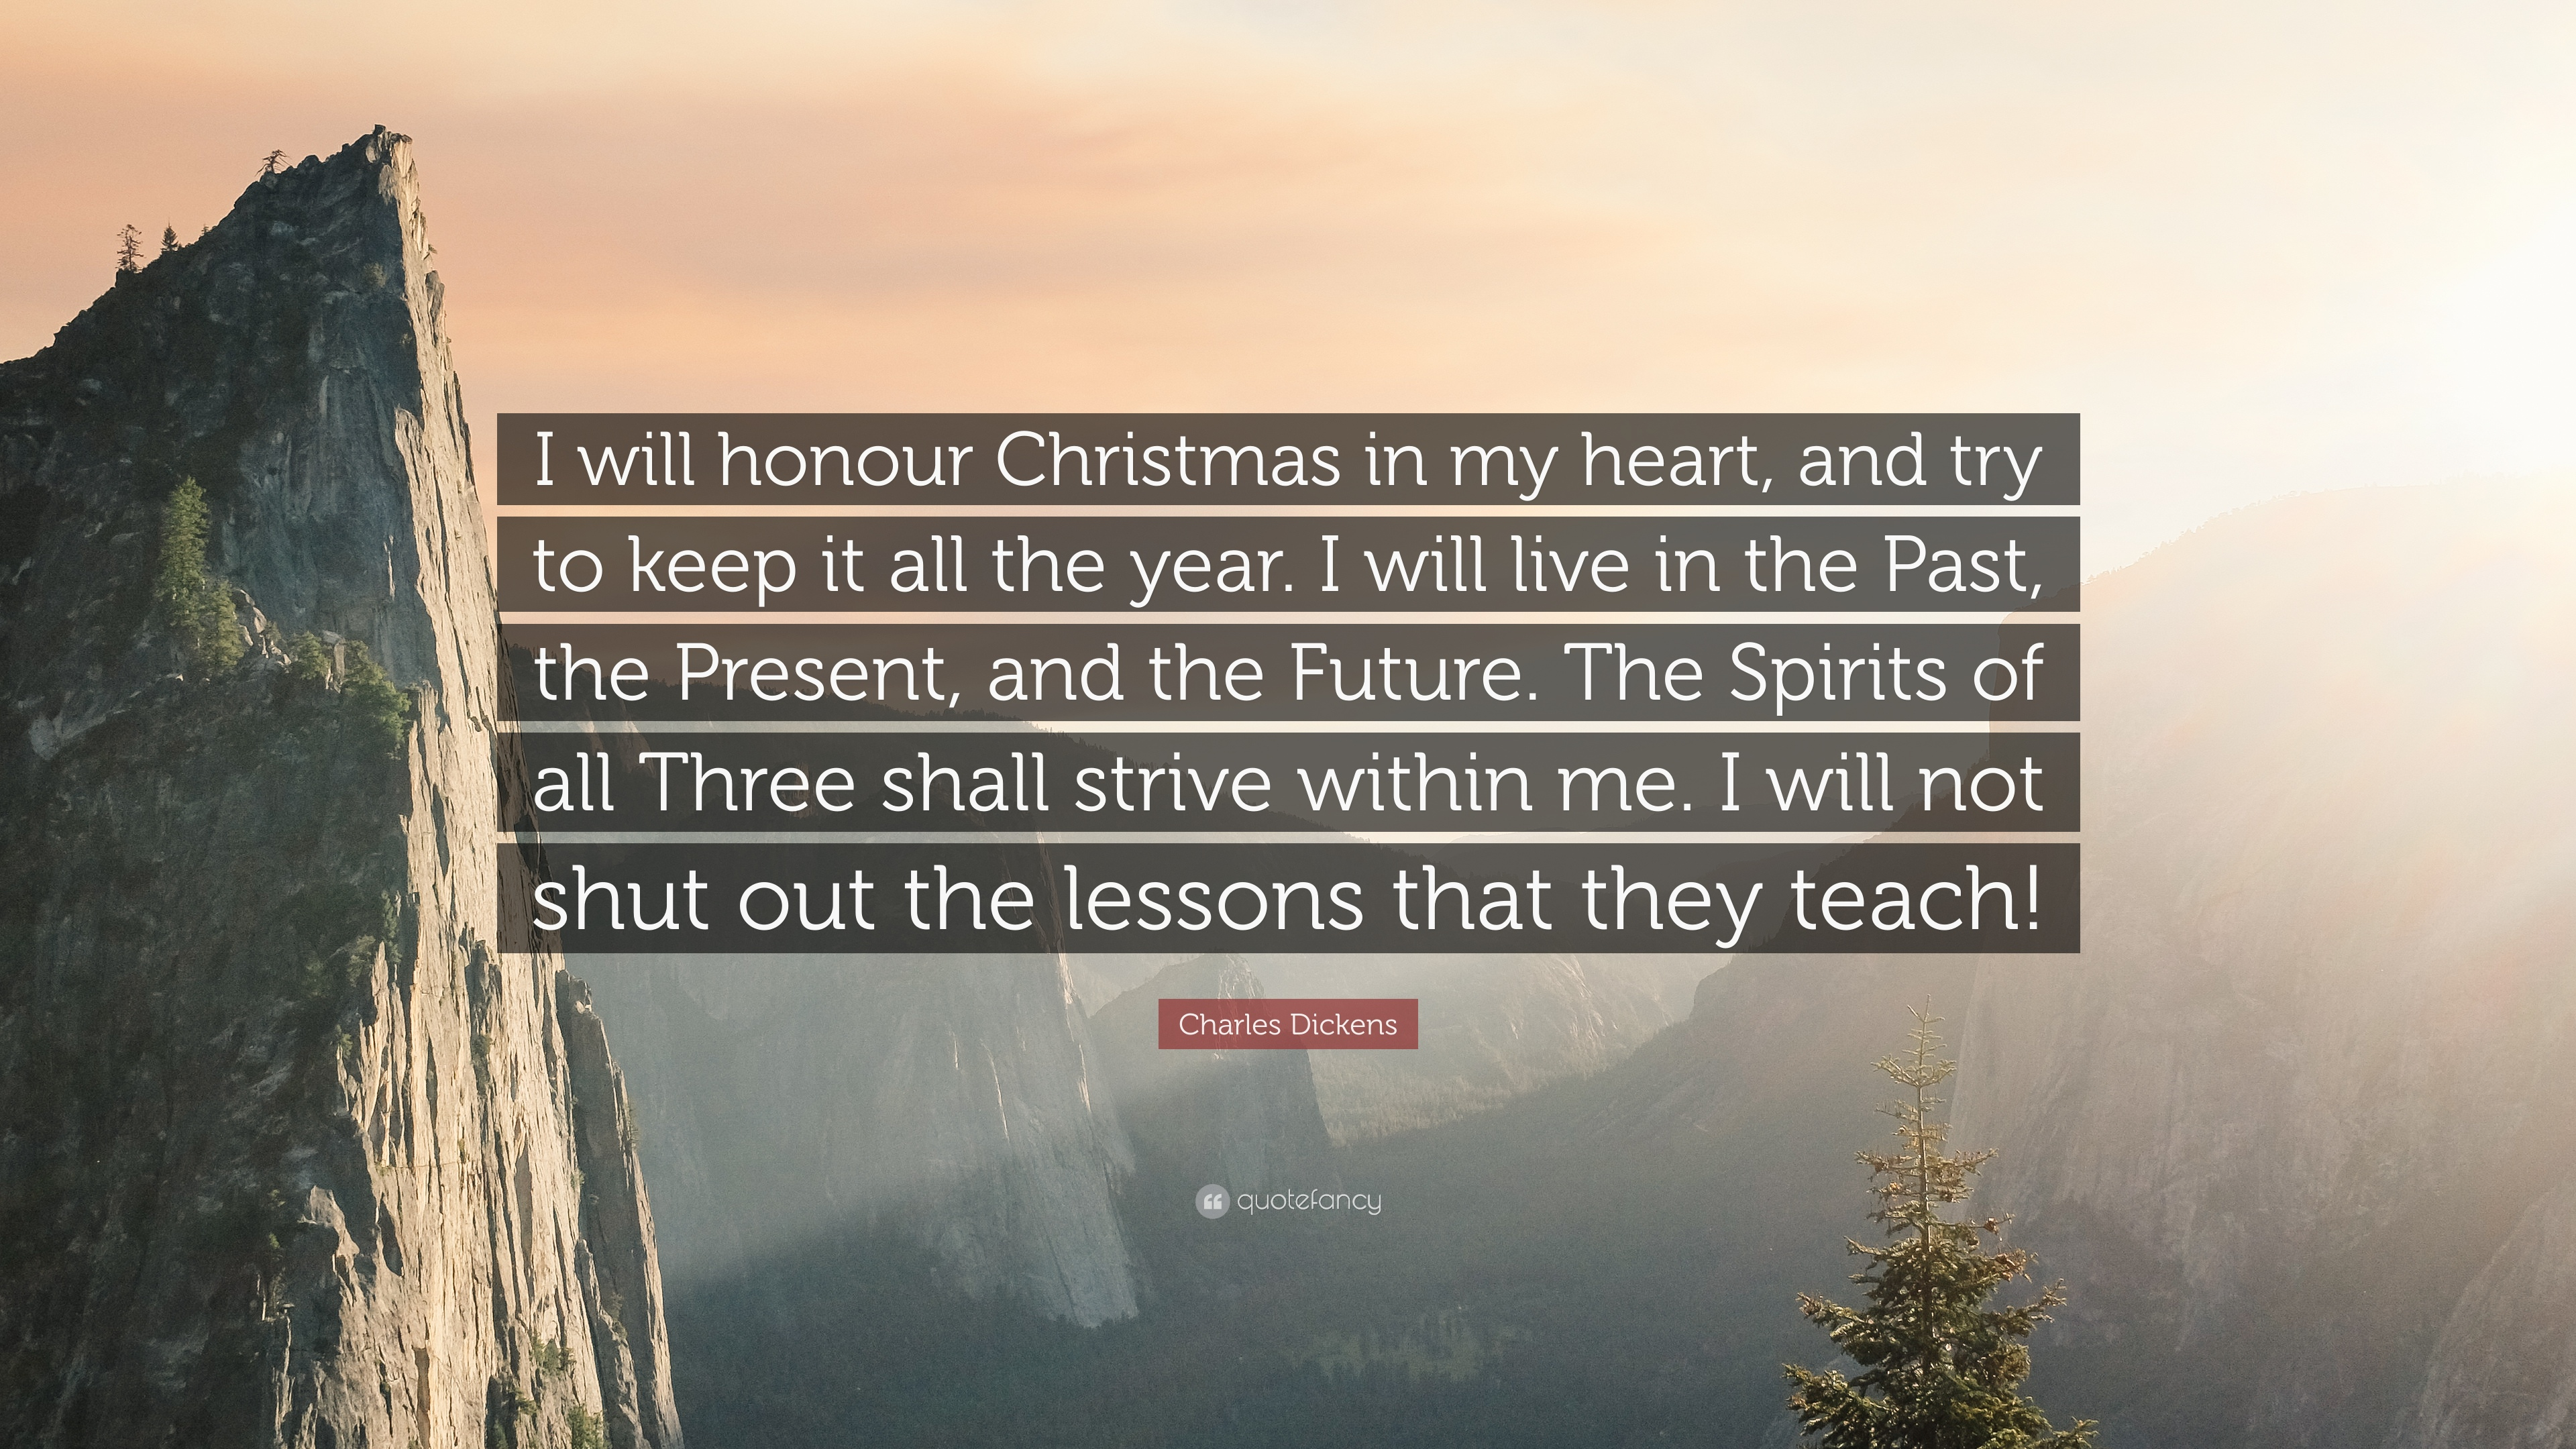 I Heart Christmas.Charles Dickens Quote I Will Honour Christmas In My Heart